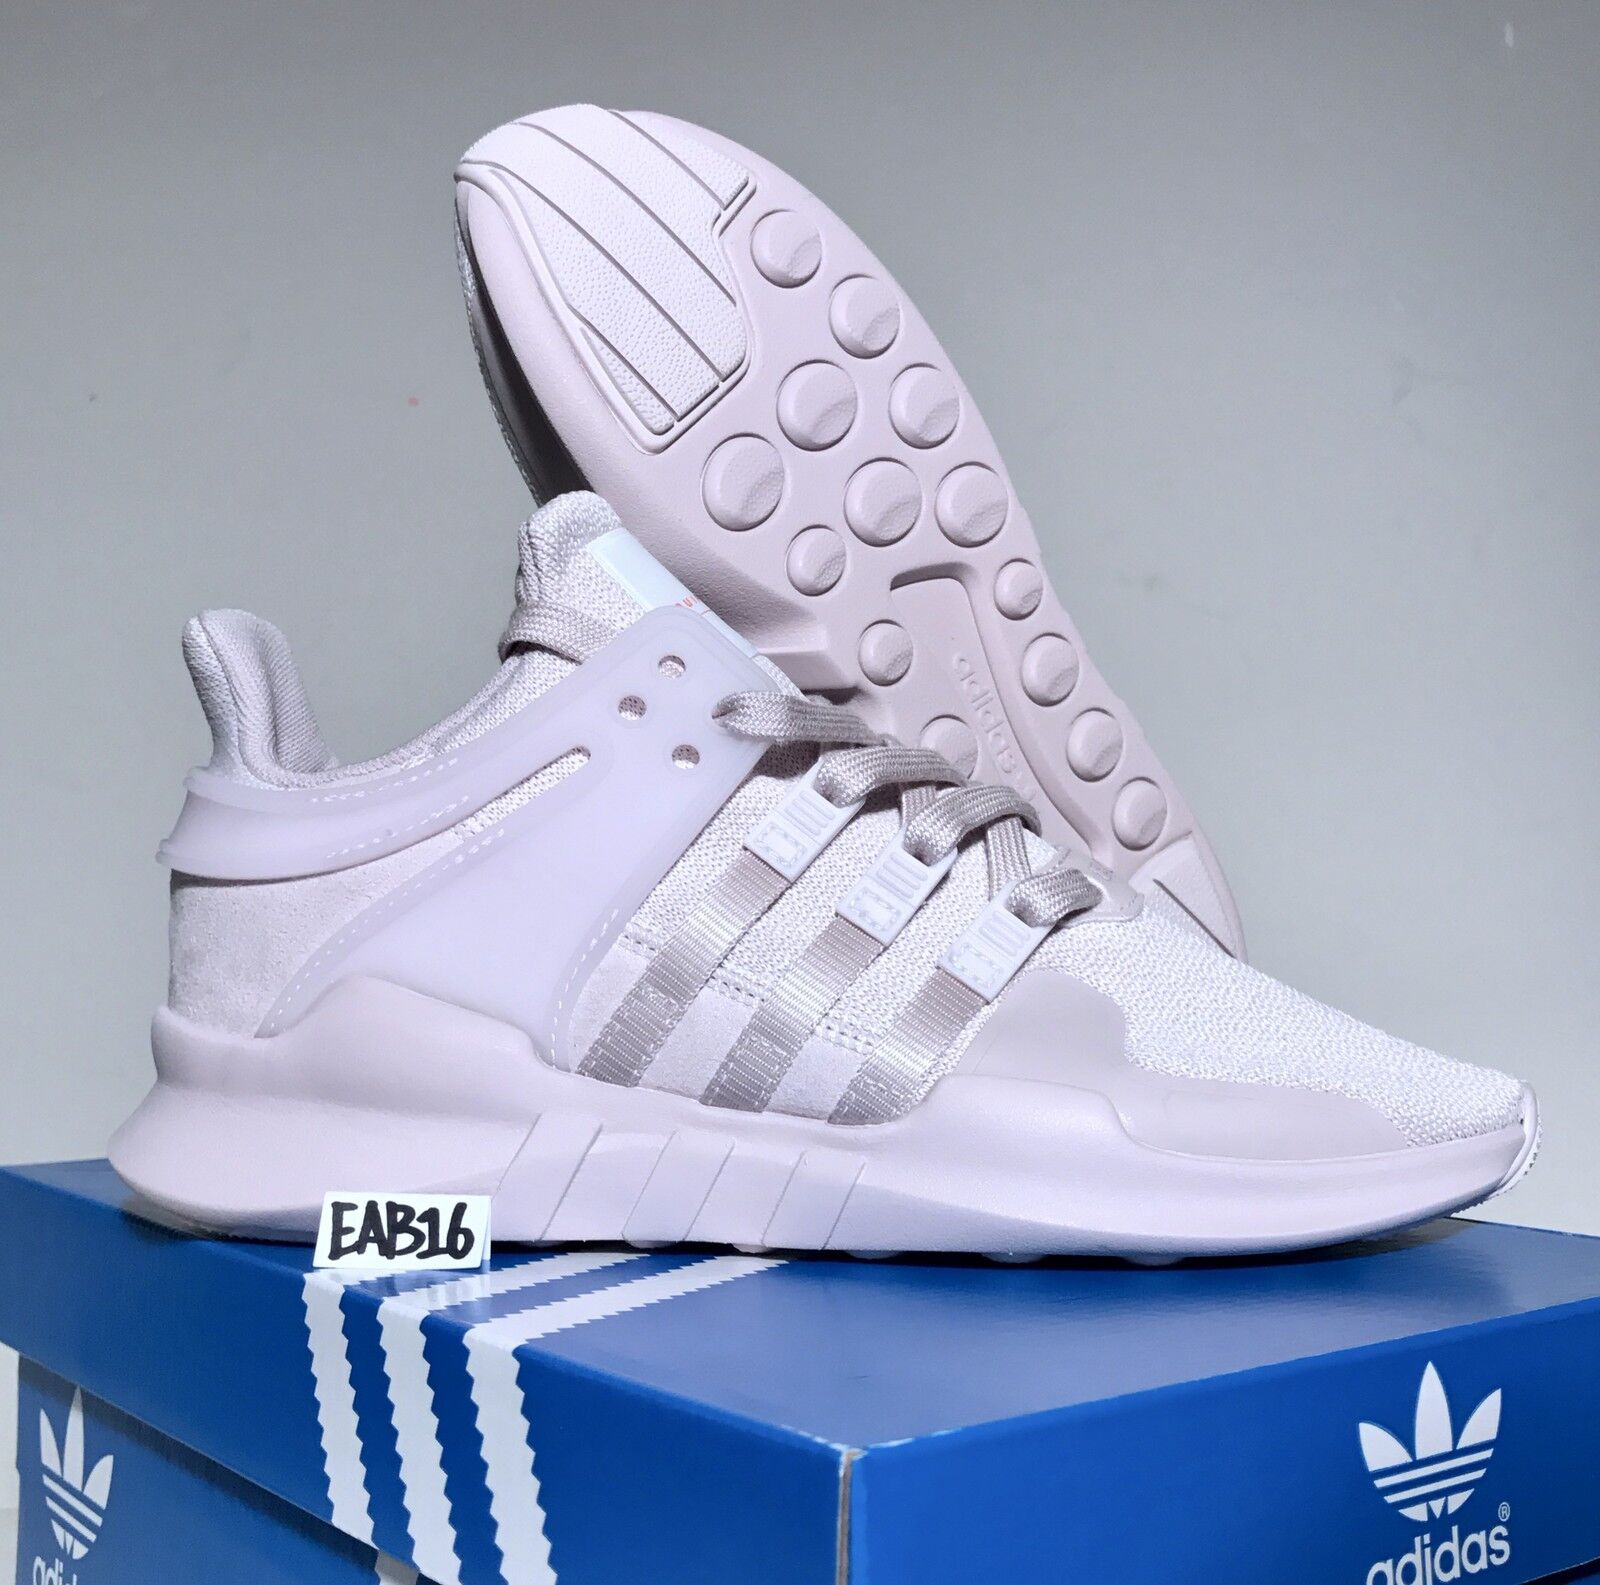 Adidas Originals EQT ADV W Purple Ice BB2327 Womens Girls Equipment Support Pink